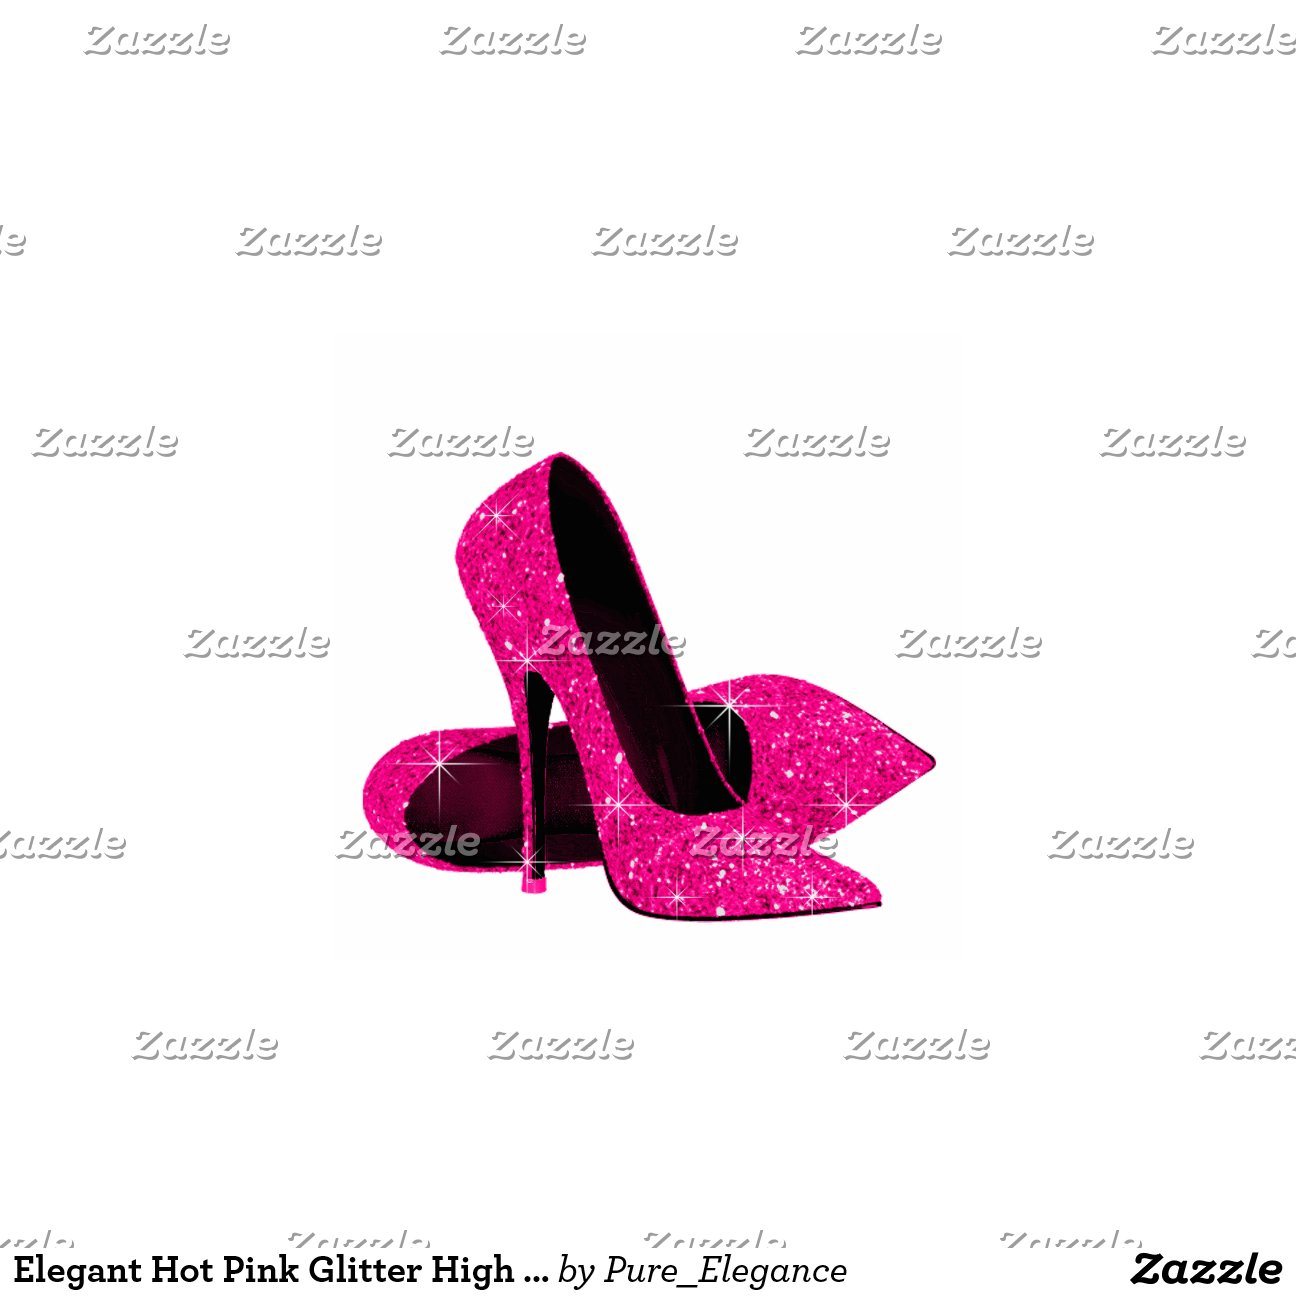 pink glitter high heel shoes zazzle